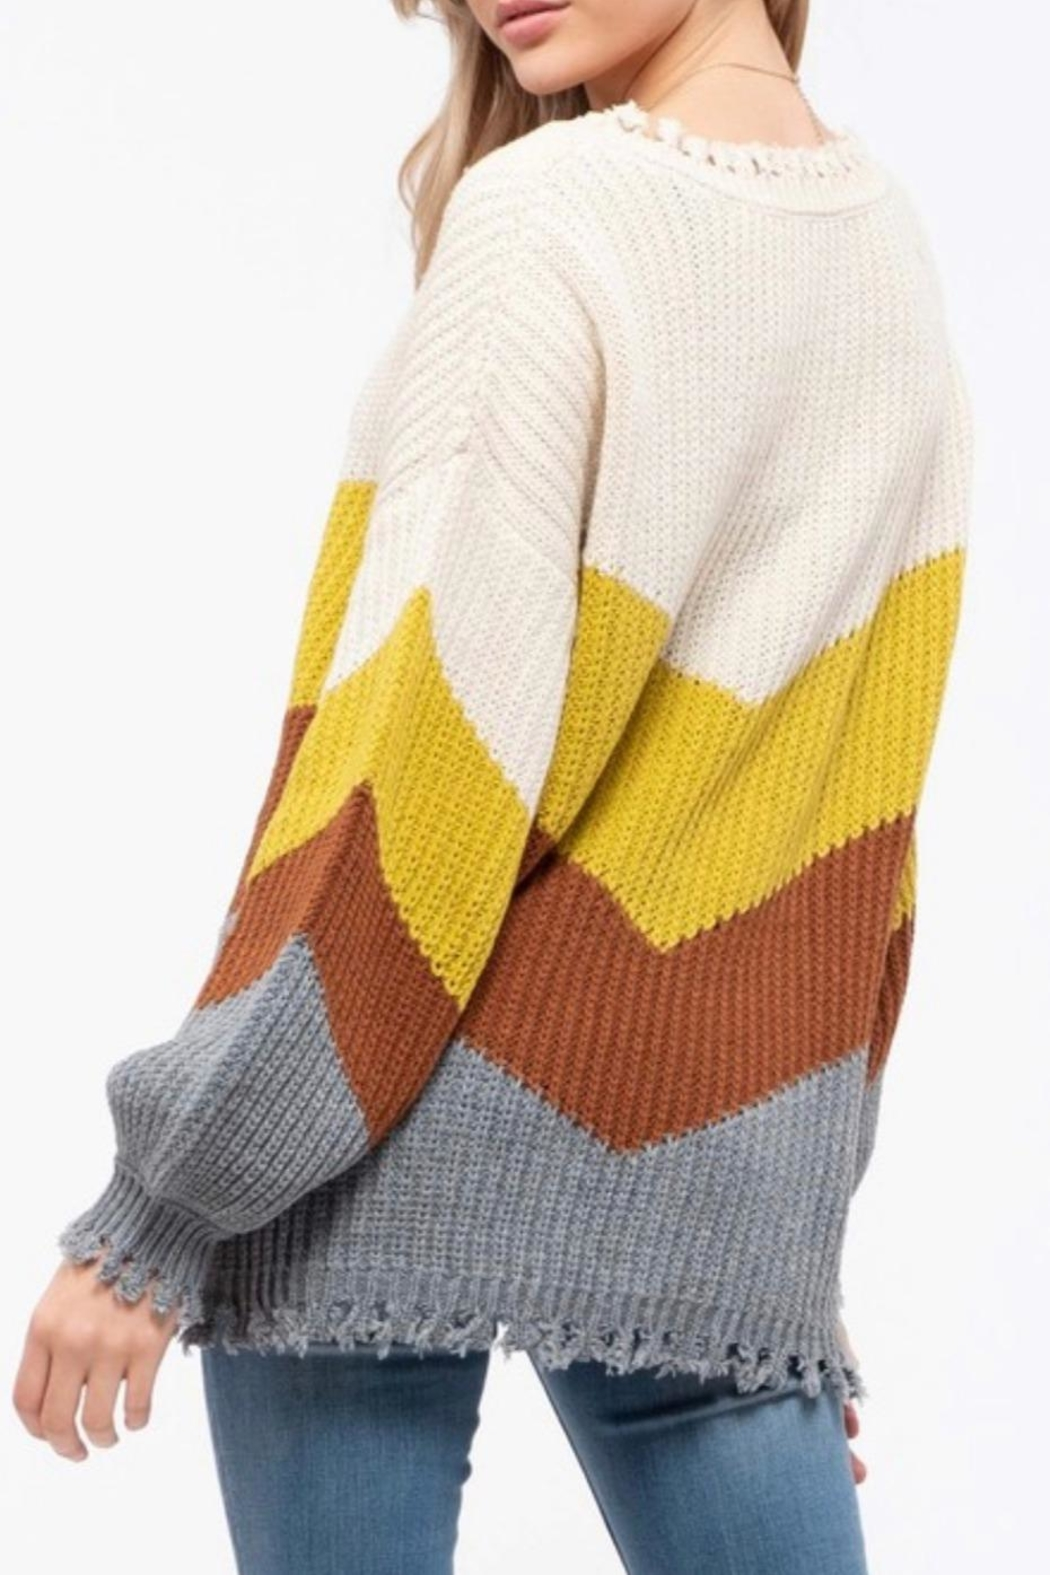 Blu Pepper Distressed Colorblock Sweater - Front Full Image